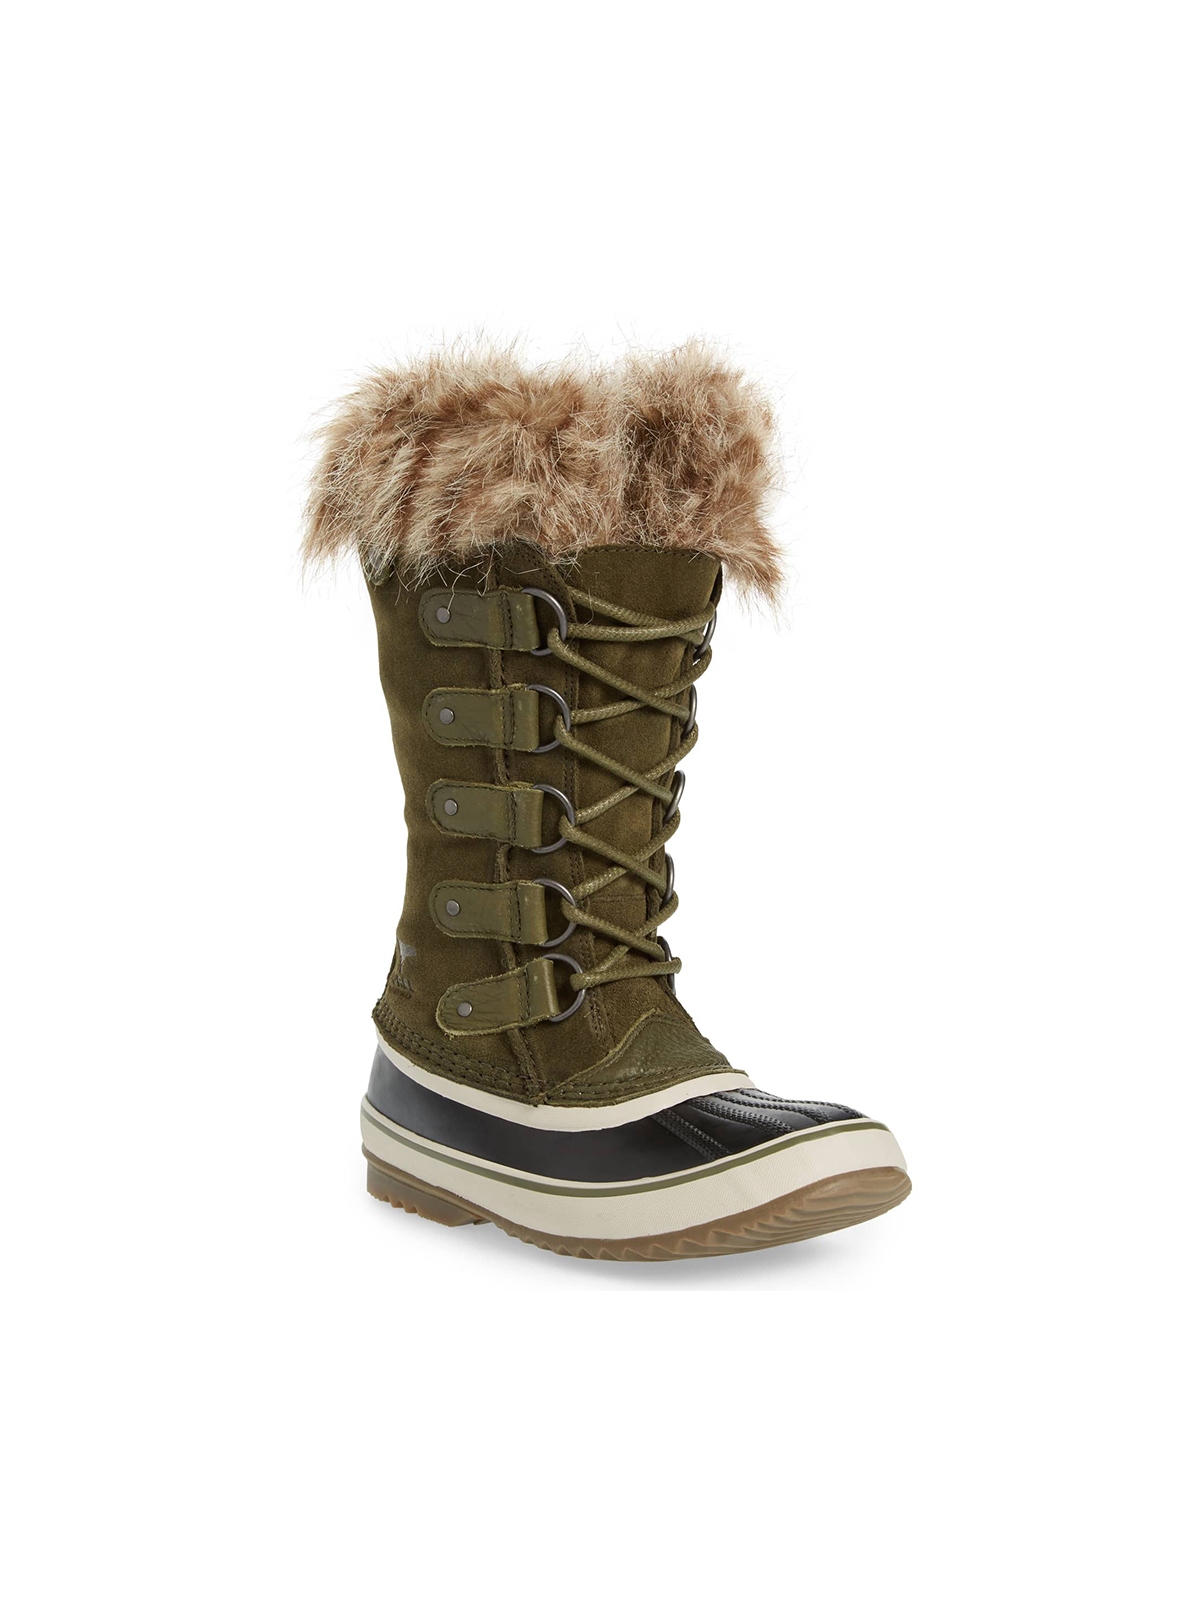 These Best-Selling, Top-Rated Winter Boots Will Keep Your Toes Warm and Toasty